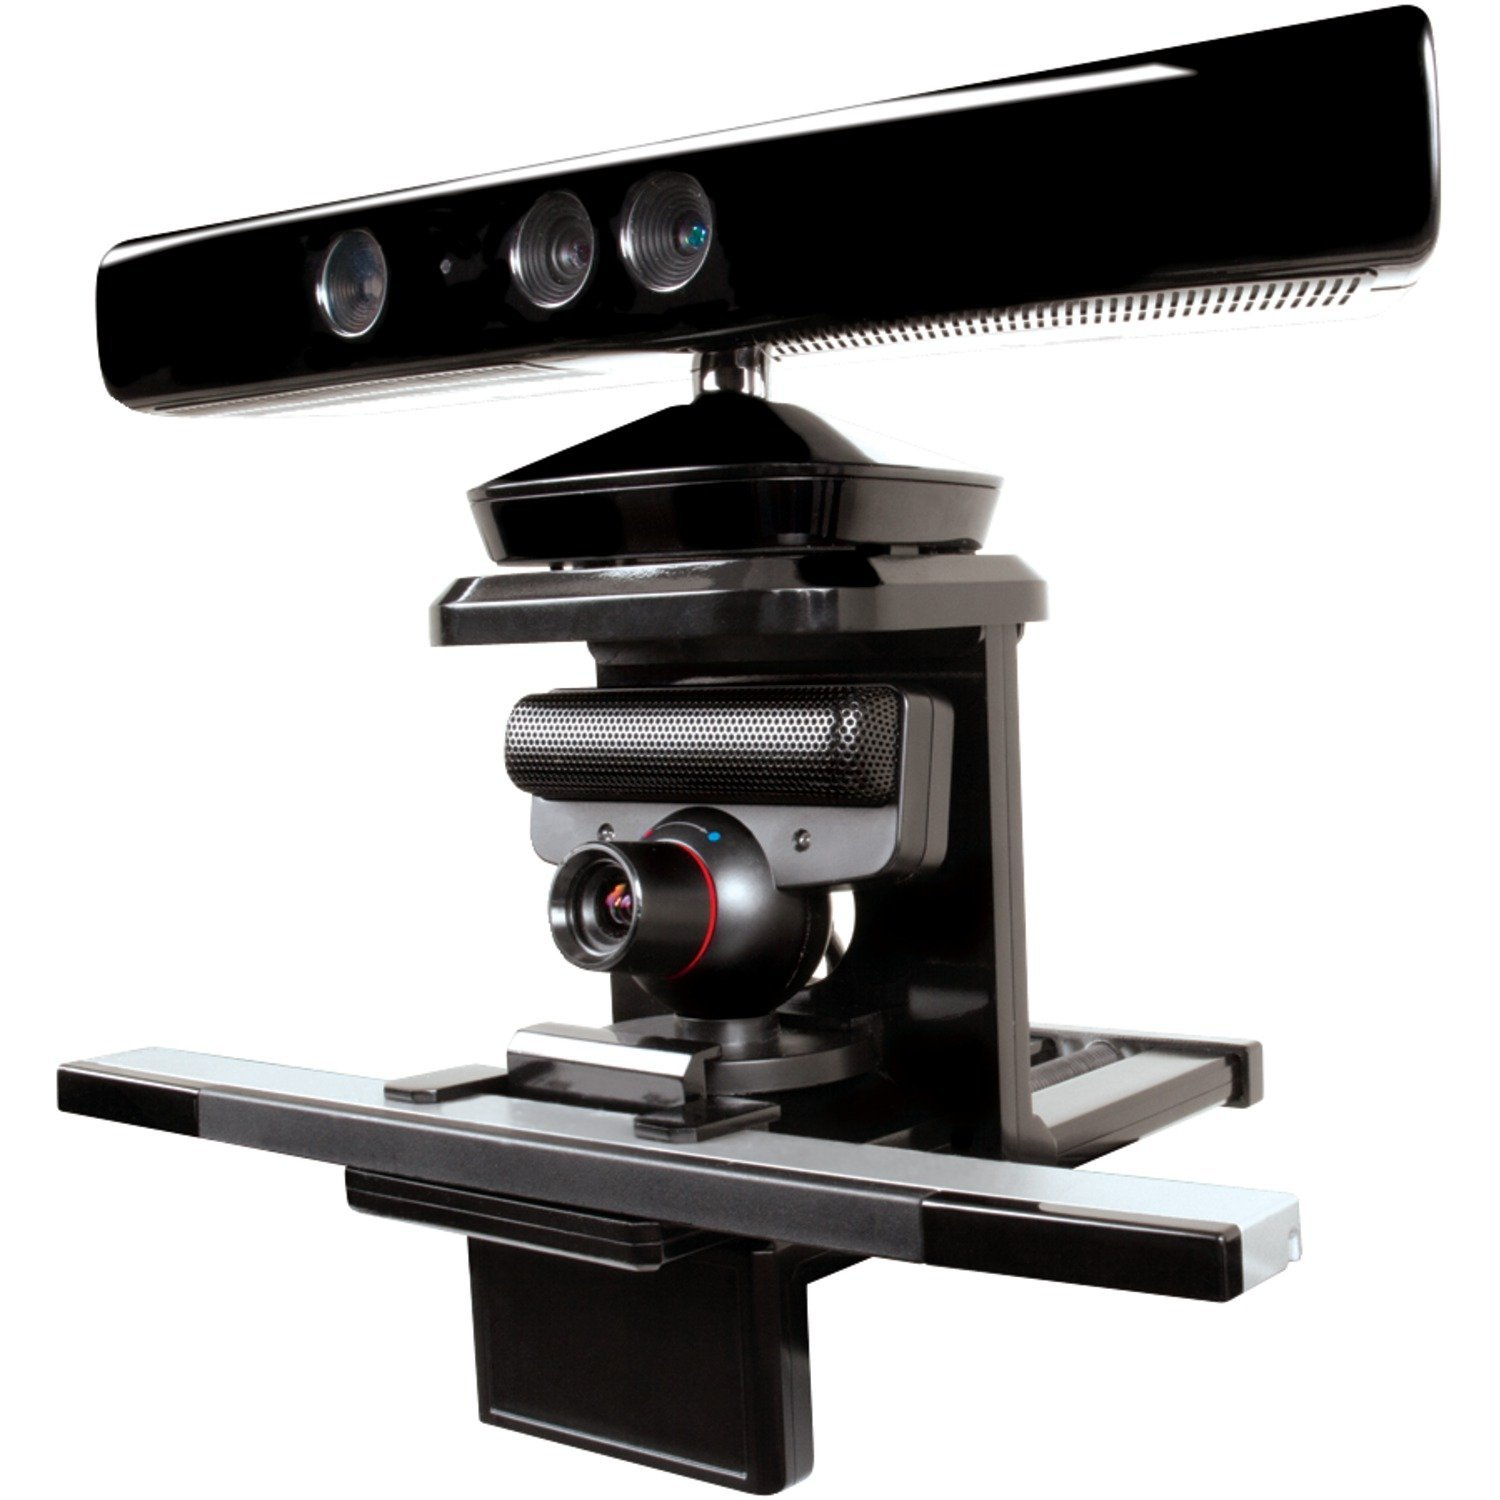 Xbox Kinect, Playstation Eye, and Wii Sensor on one mount